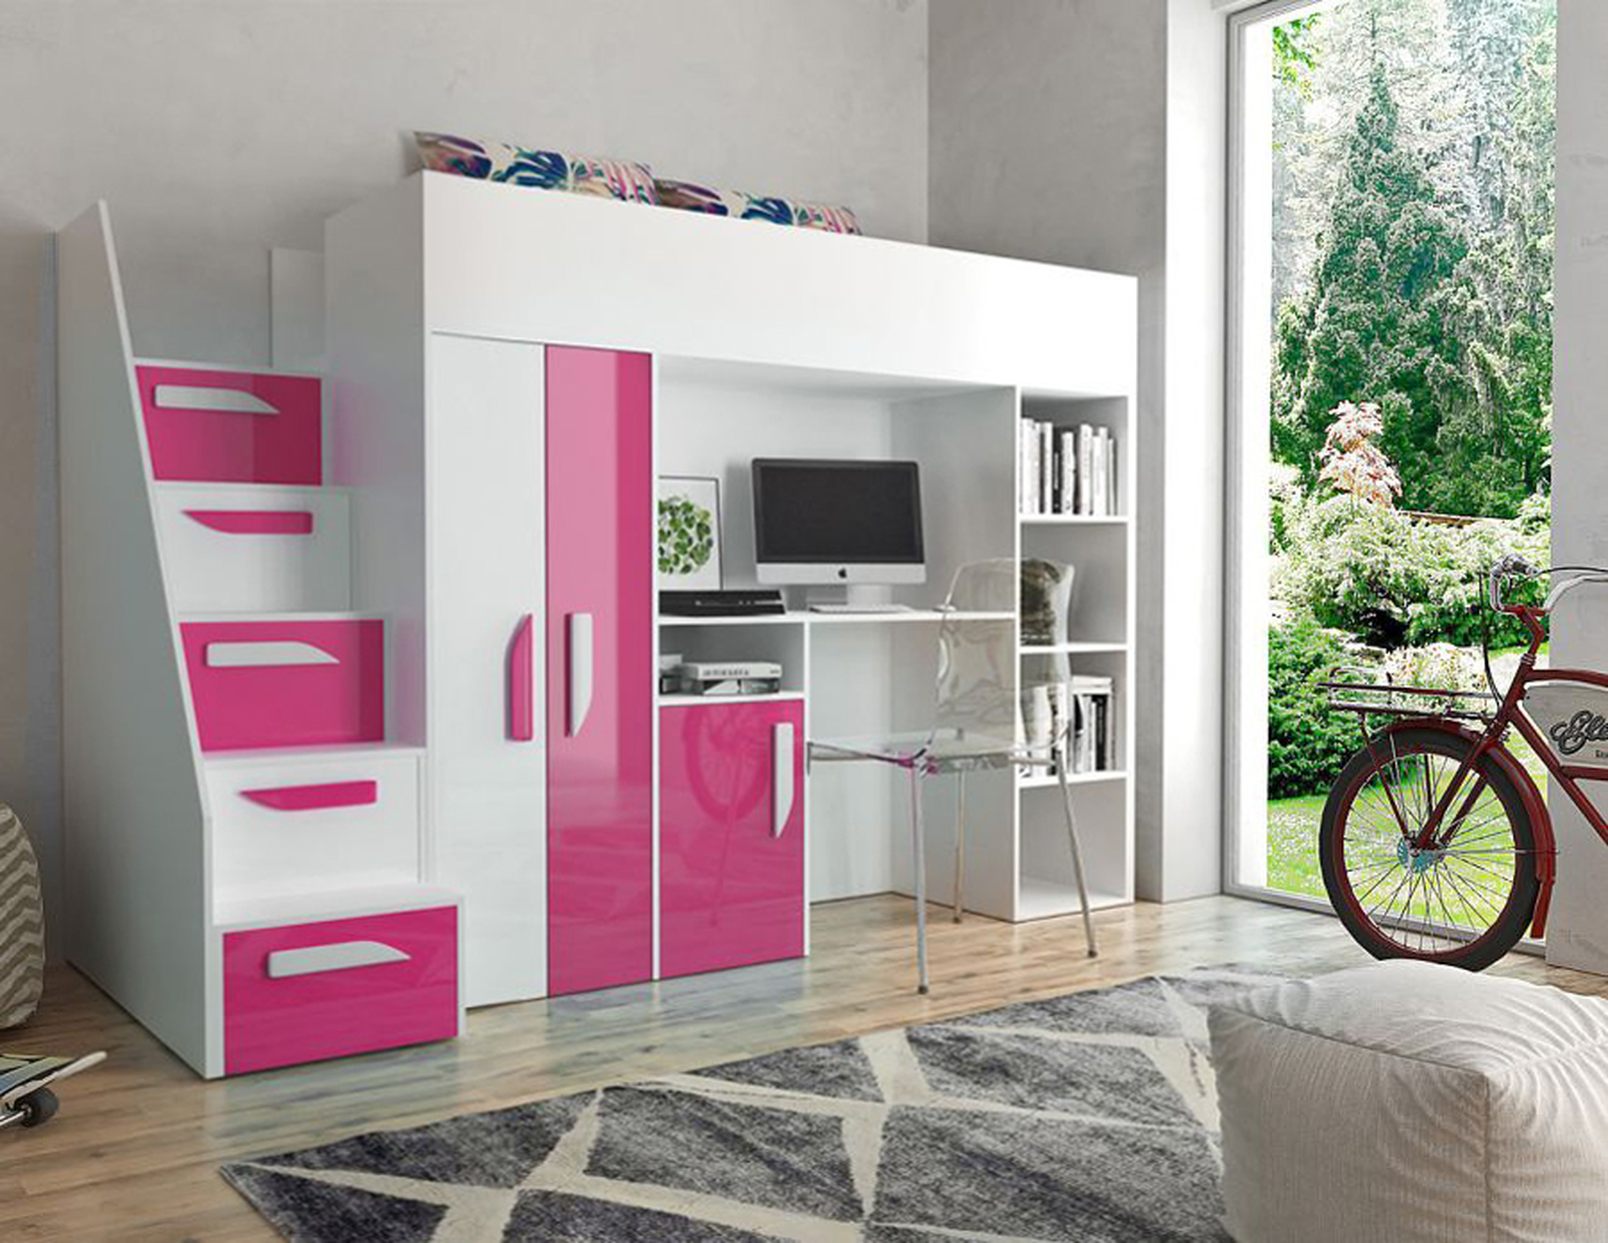 Hochbett Sunrise In 2018 Pink Passion Room Bedroom Storage Room